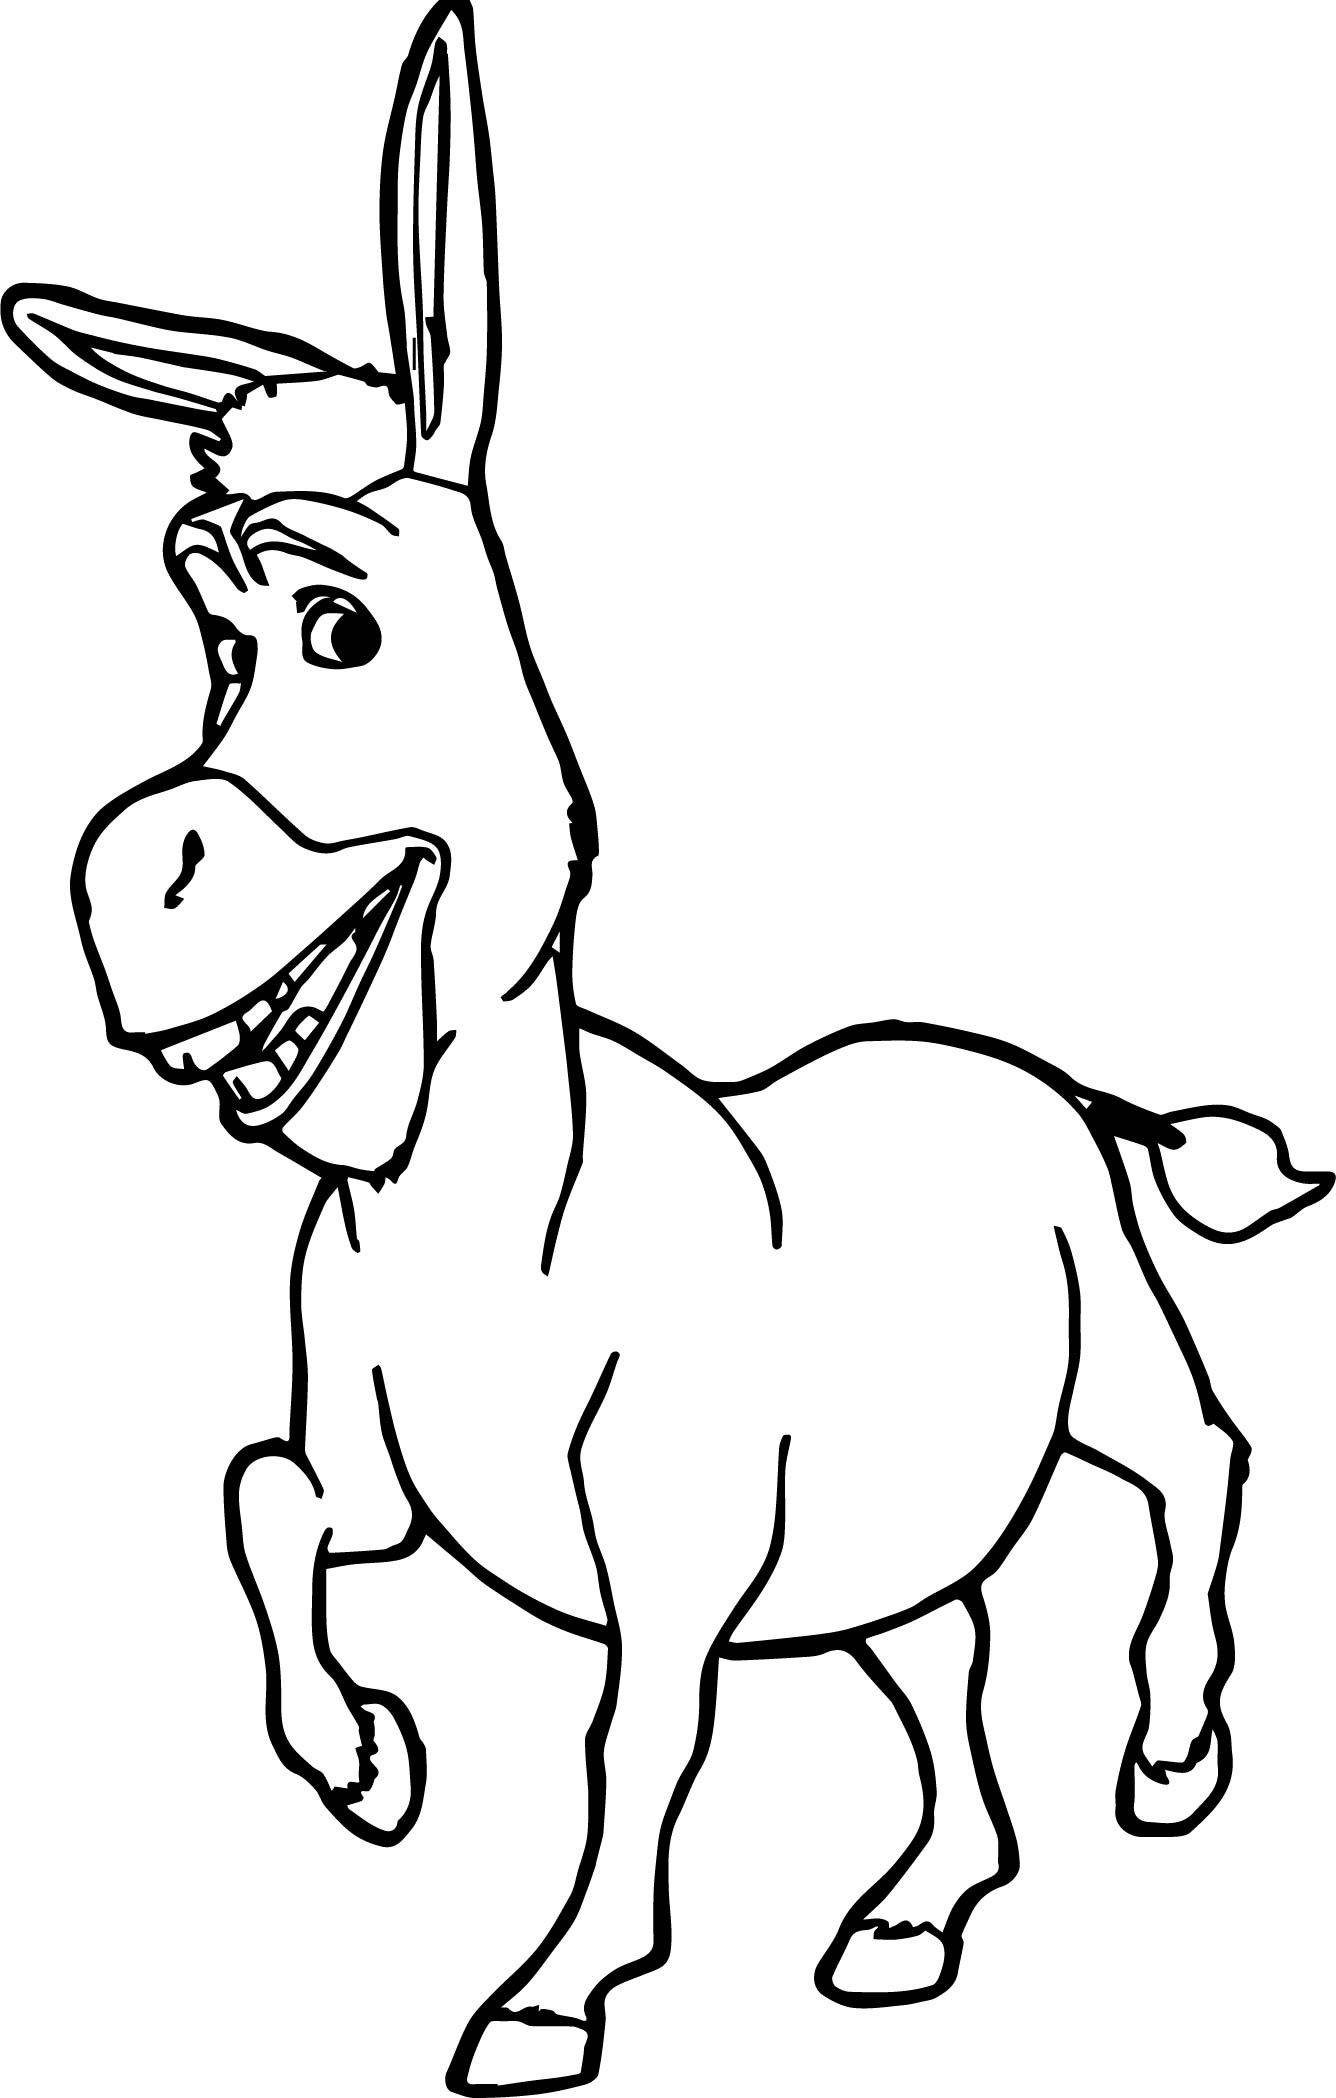 1336x2098 Revisited Donkey Coloring Page Shrek And Pages Printable For Kids